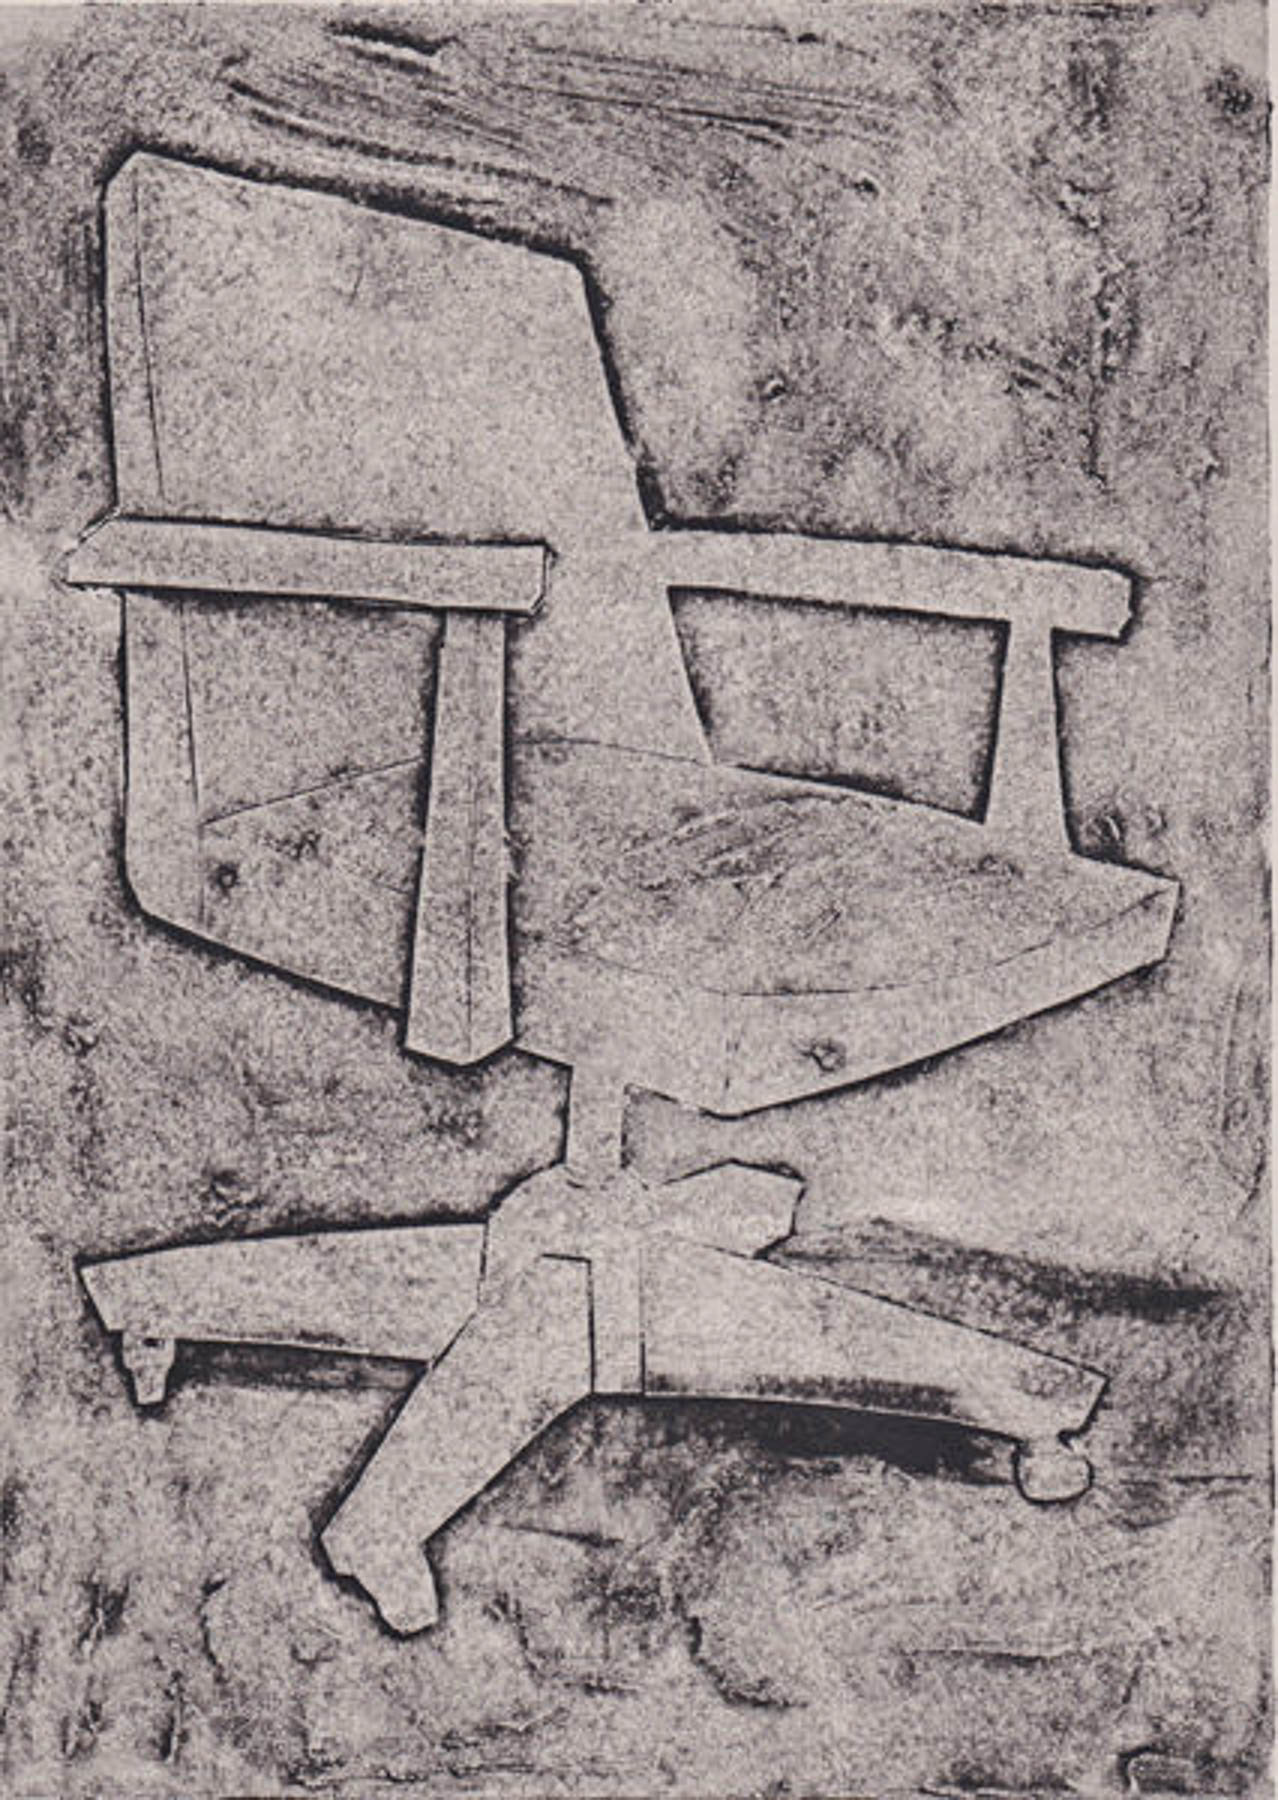 Office Chair, Collagraph, Ink on Rice paper, 6 x 8 inches